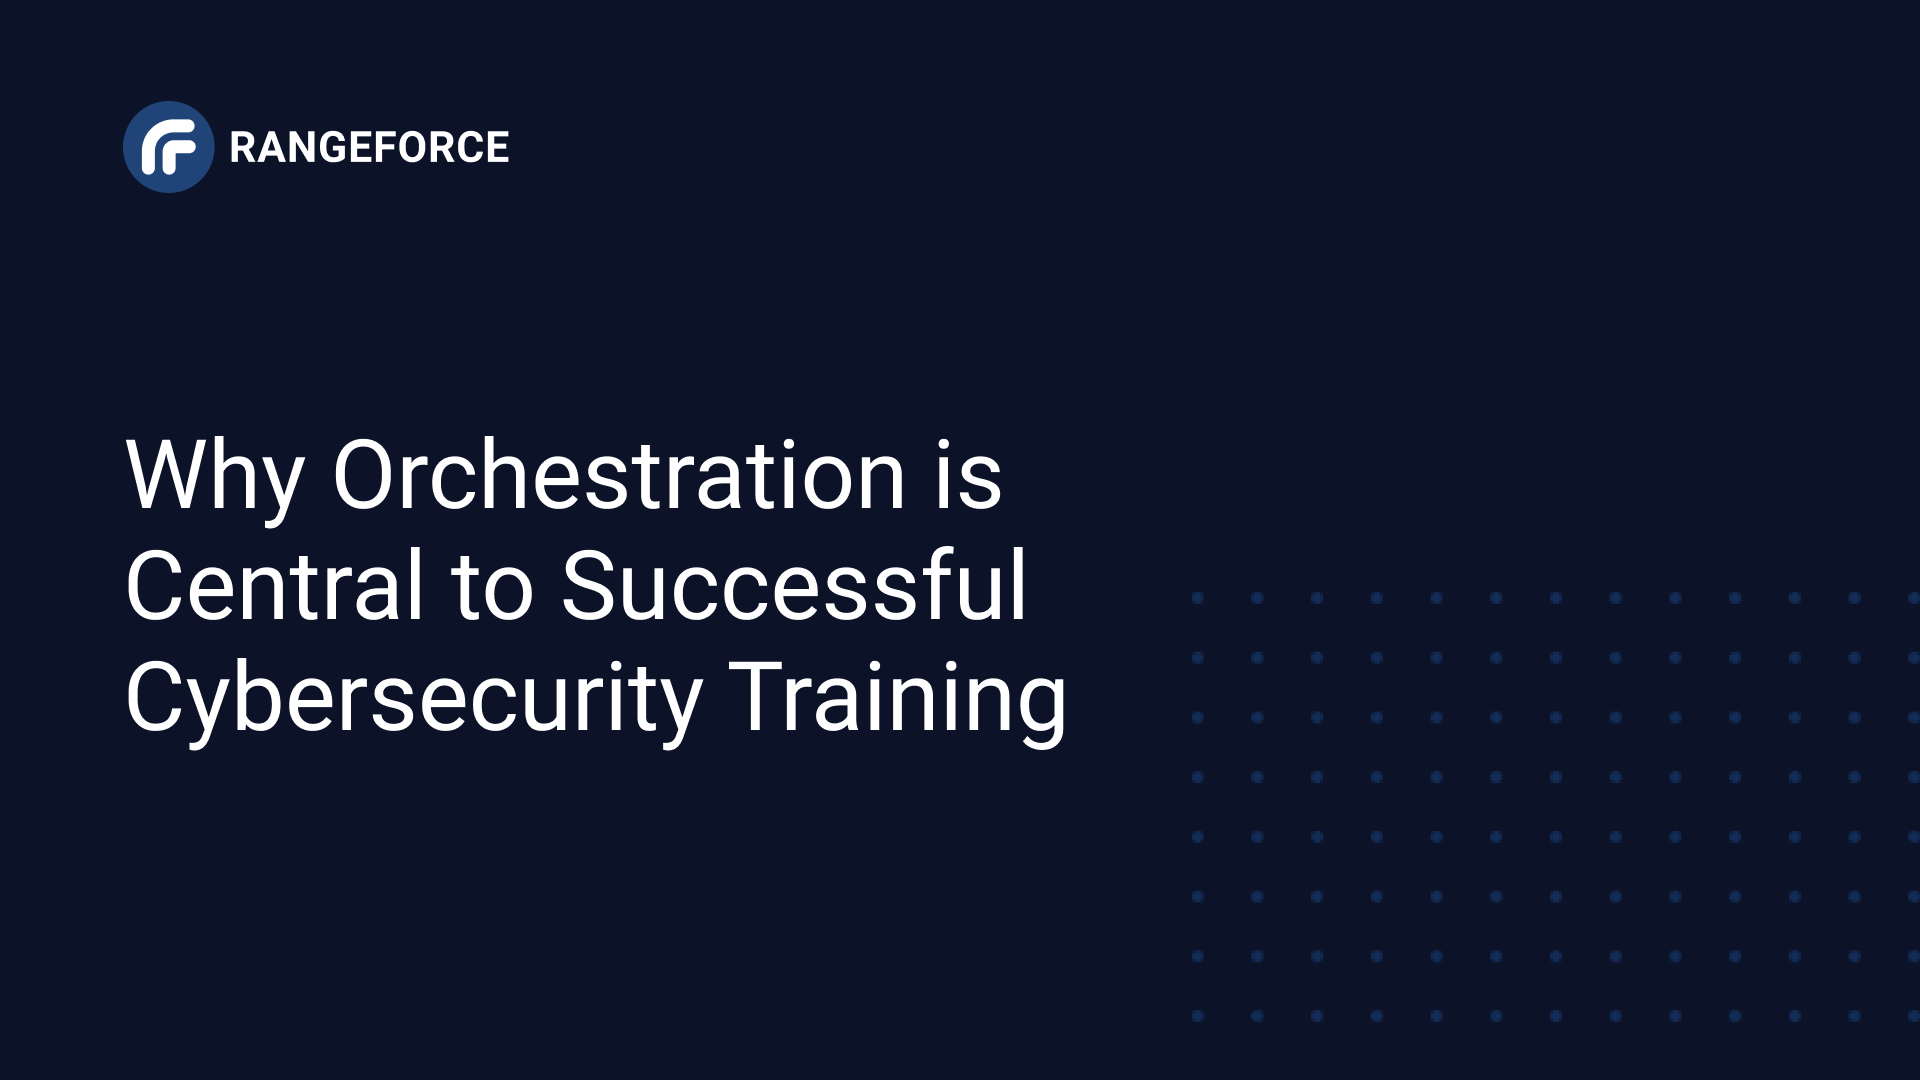 orchestration and cybersecurity training